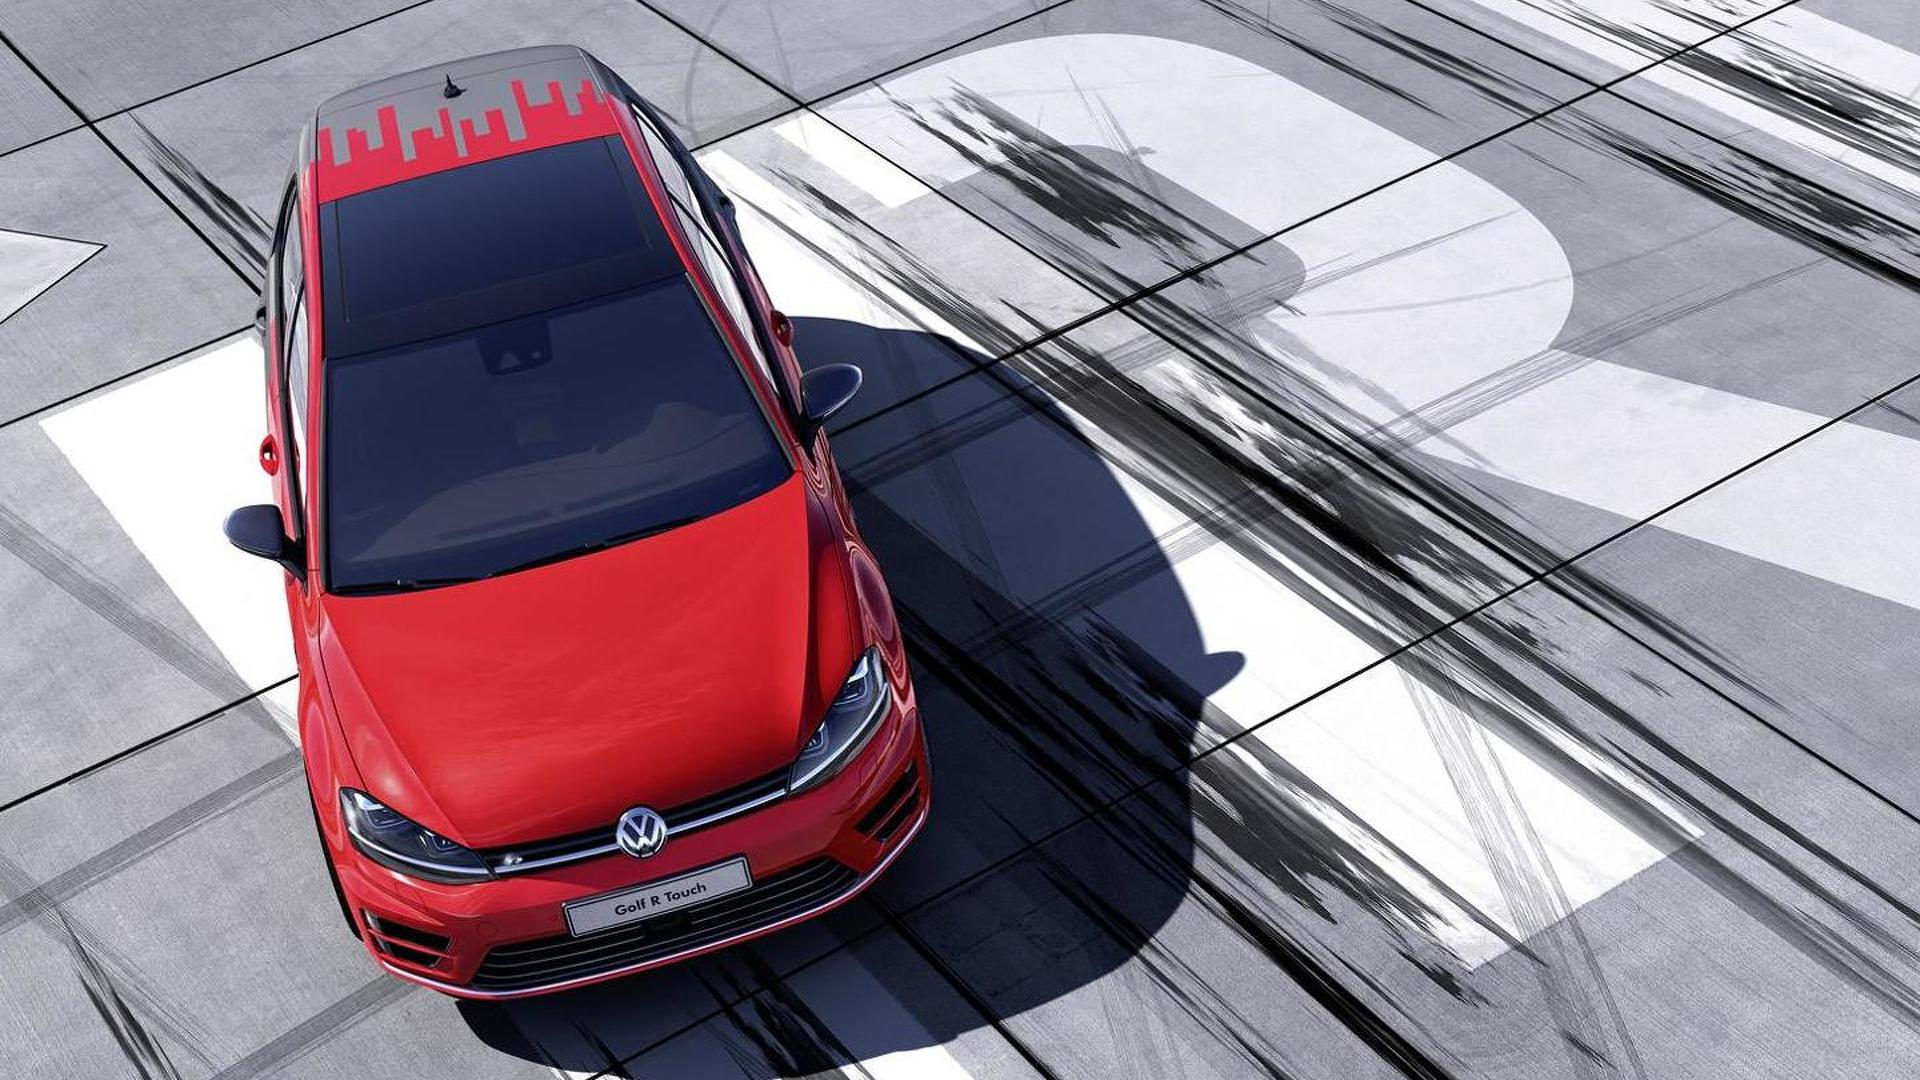 Концепт Volkswagen Golf R Touch 2015 года